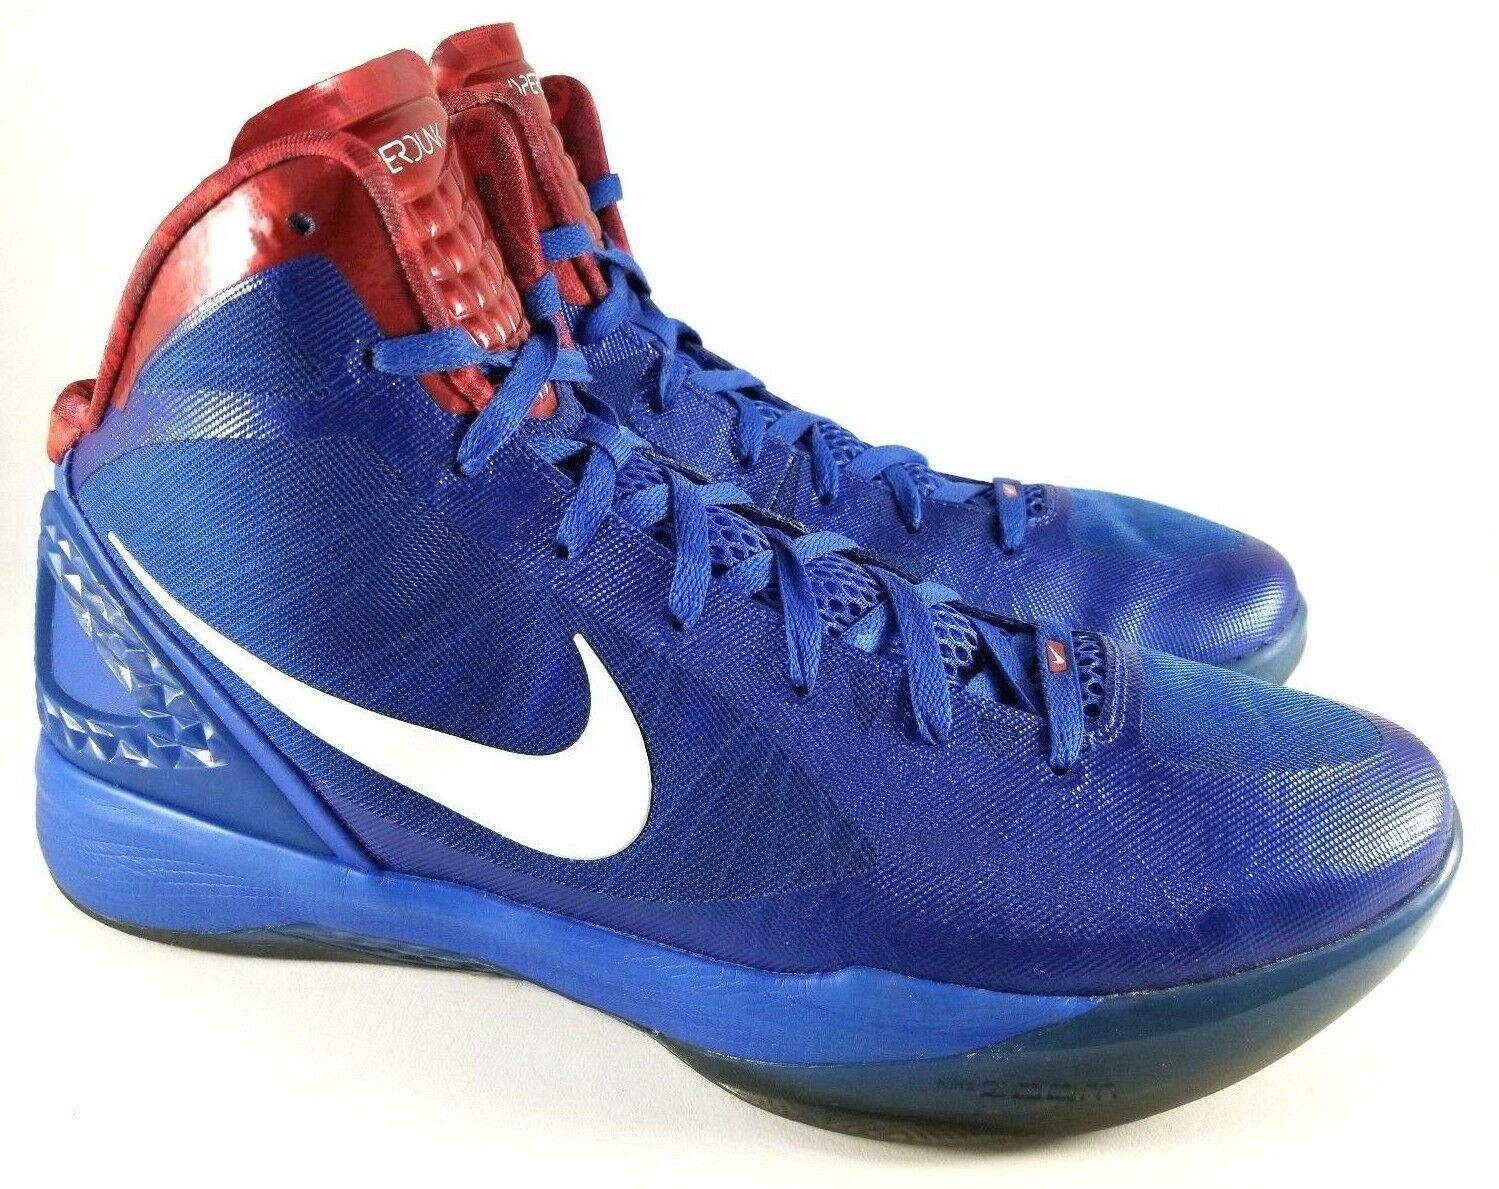 57bbc69354efc Nike Hyperdunk 2011 Blake Griffin Basketball and 48 similar items. 57